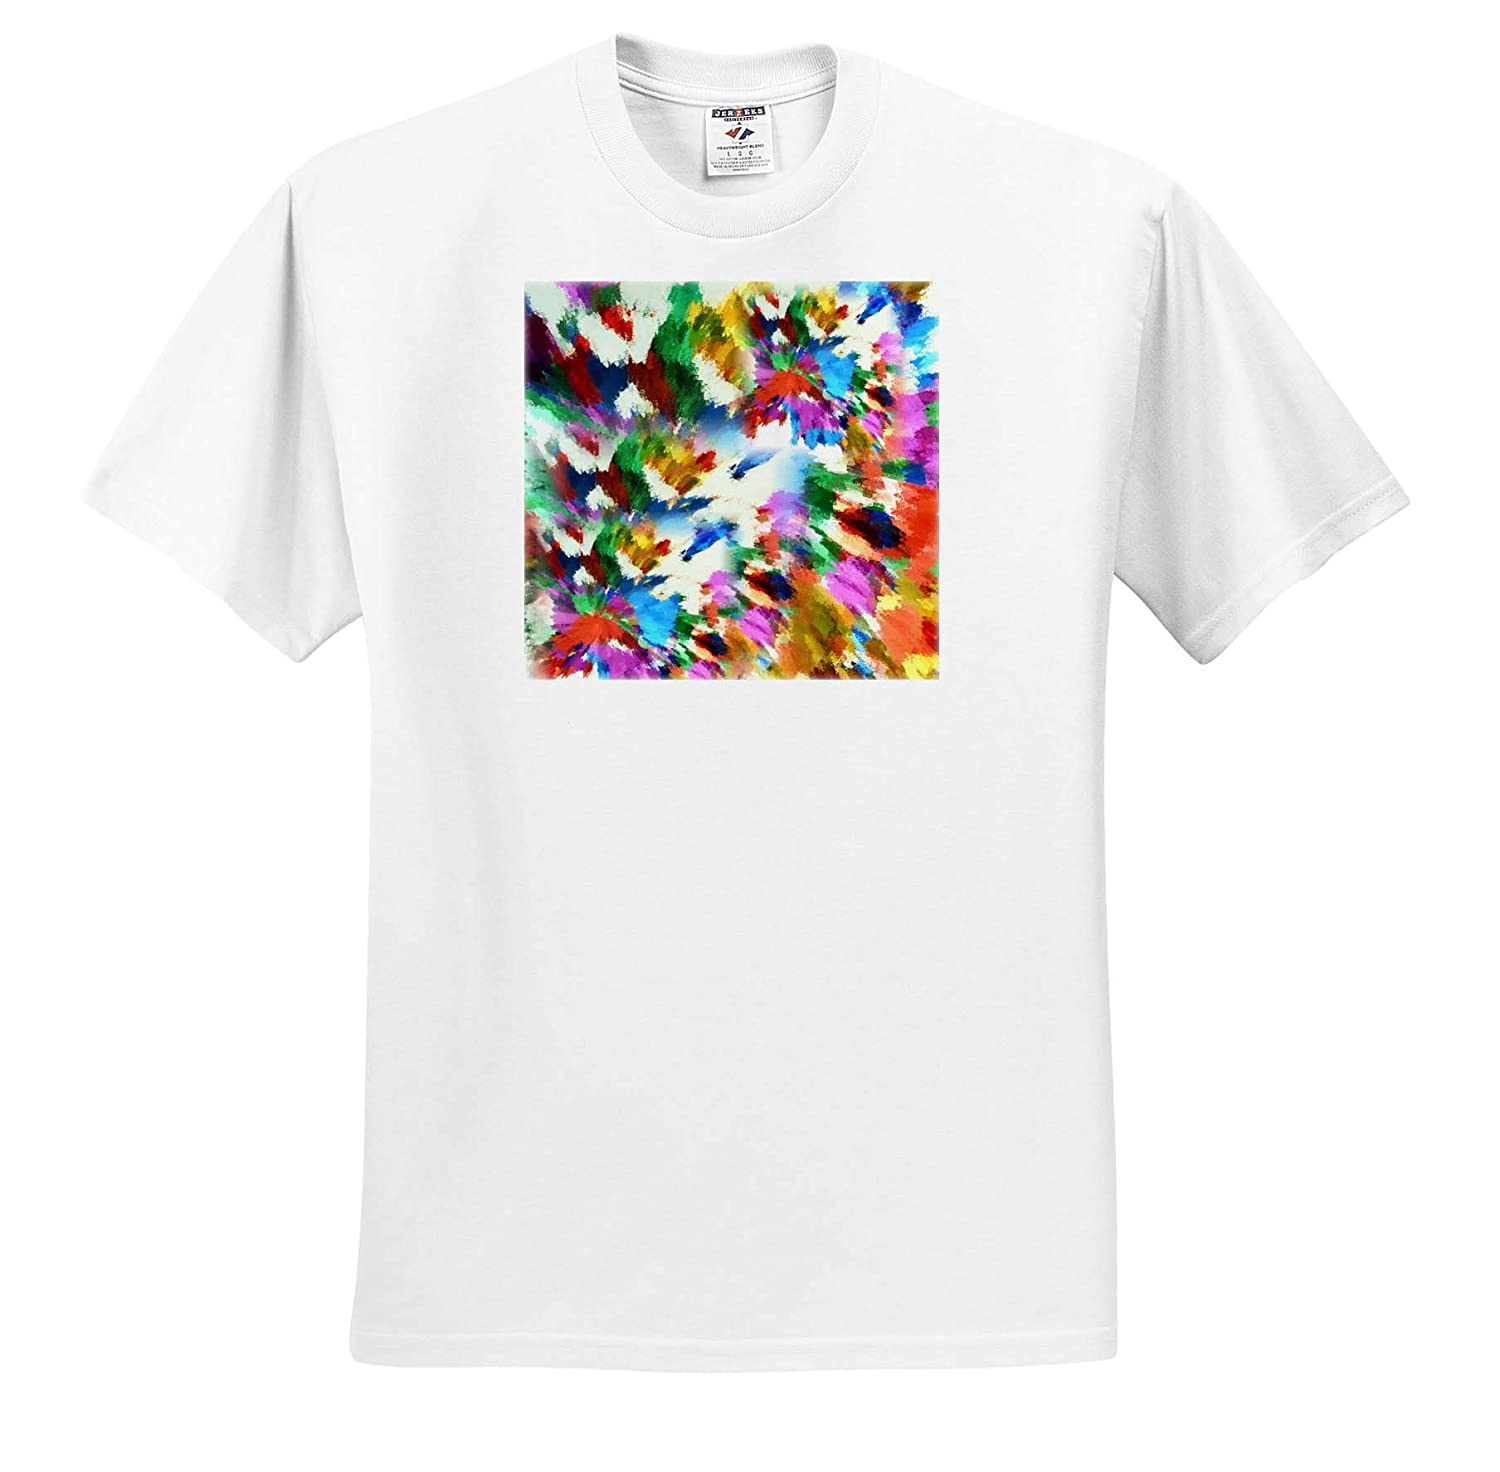 T-Shirts 3dRose Lens Art by Florene Digital Contemporary Image of Abstract Burst of Multi Colors